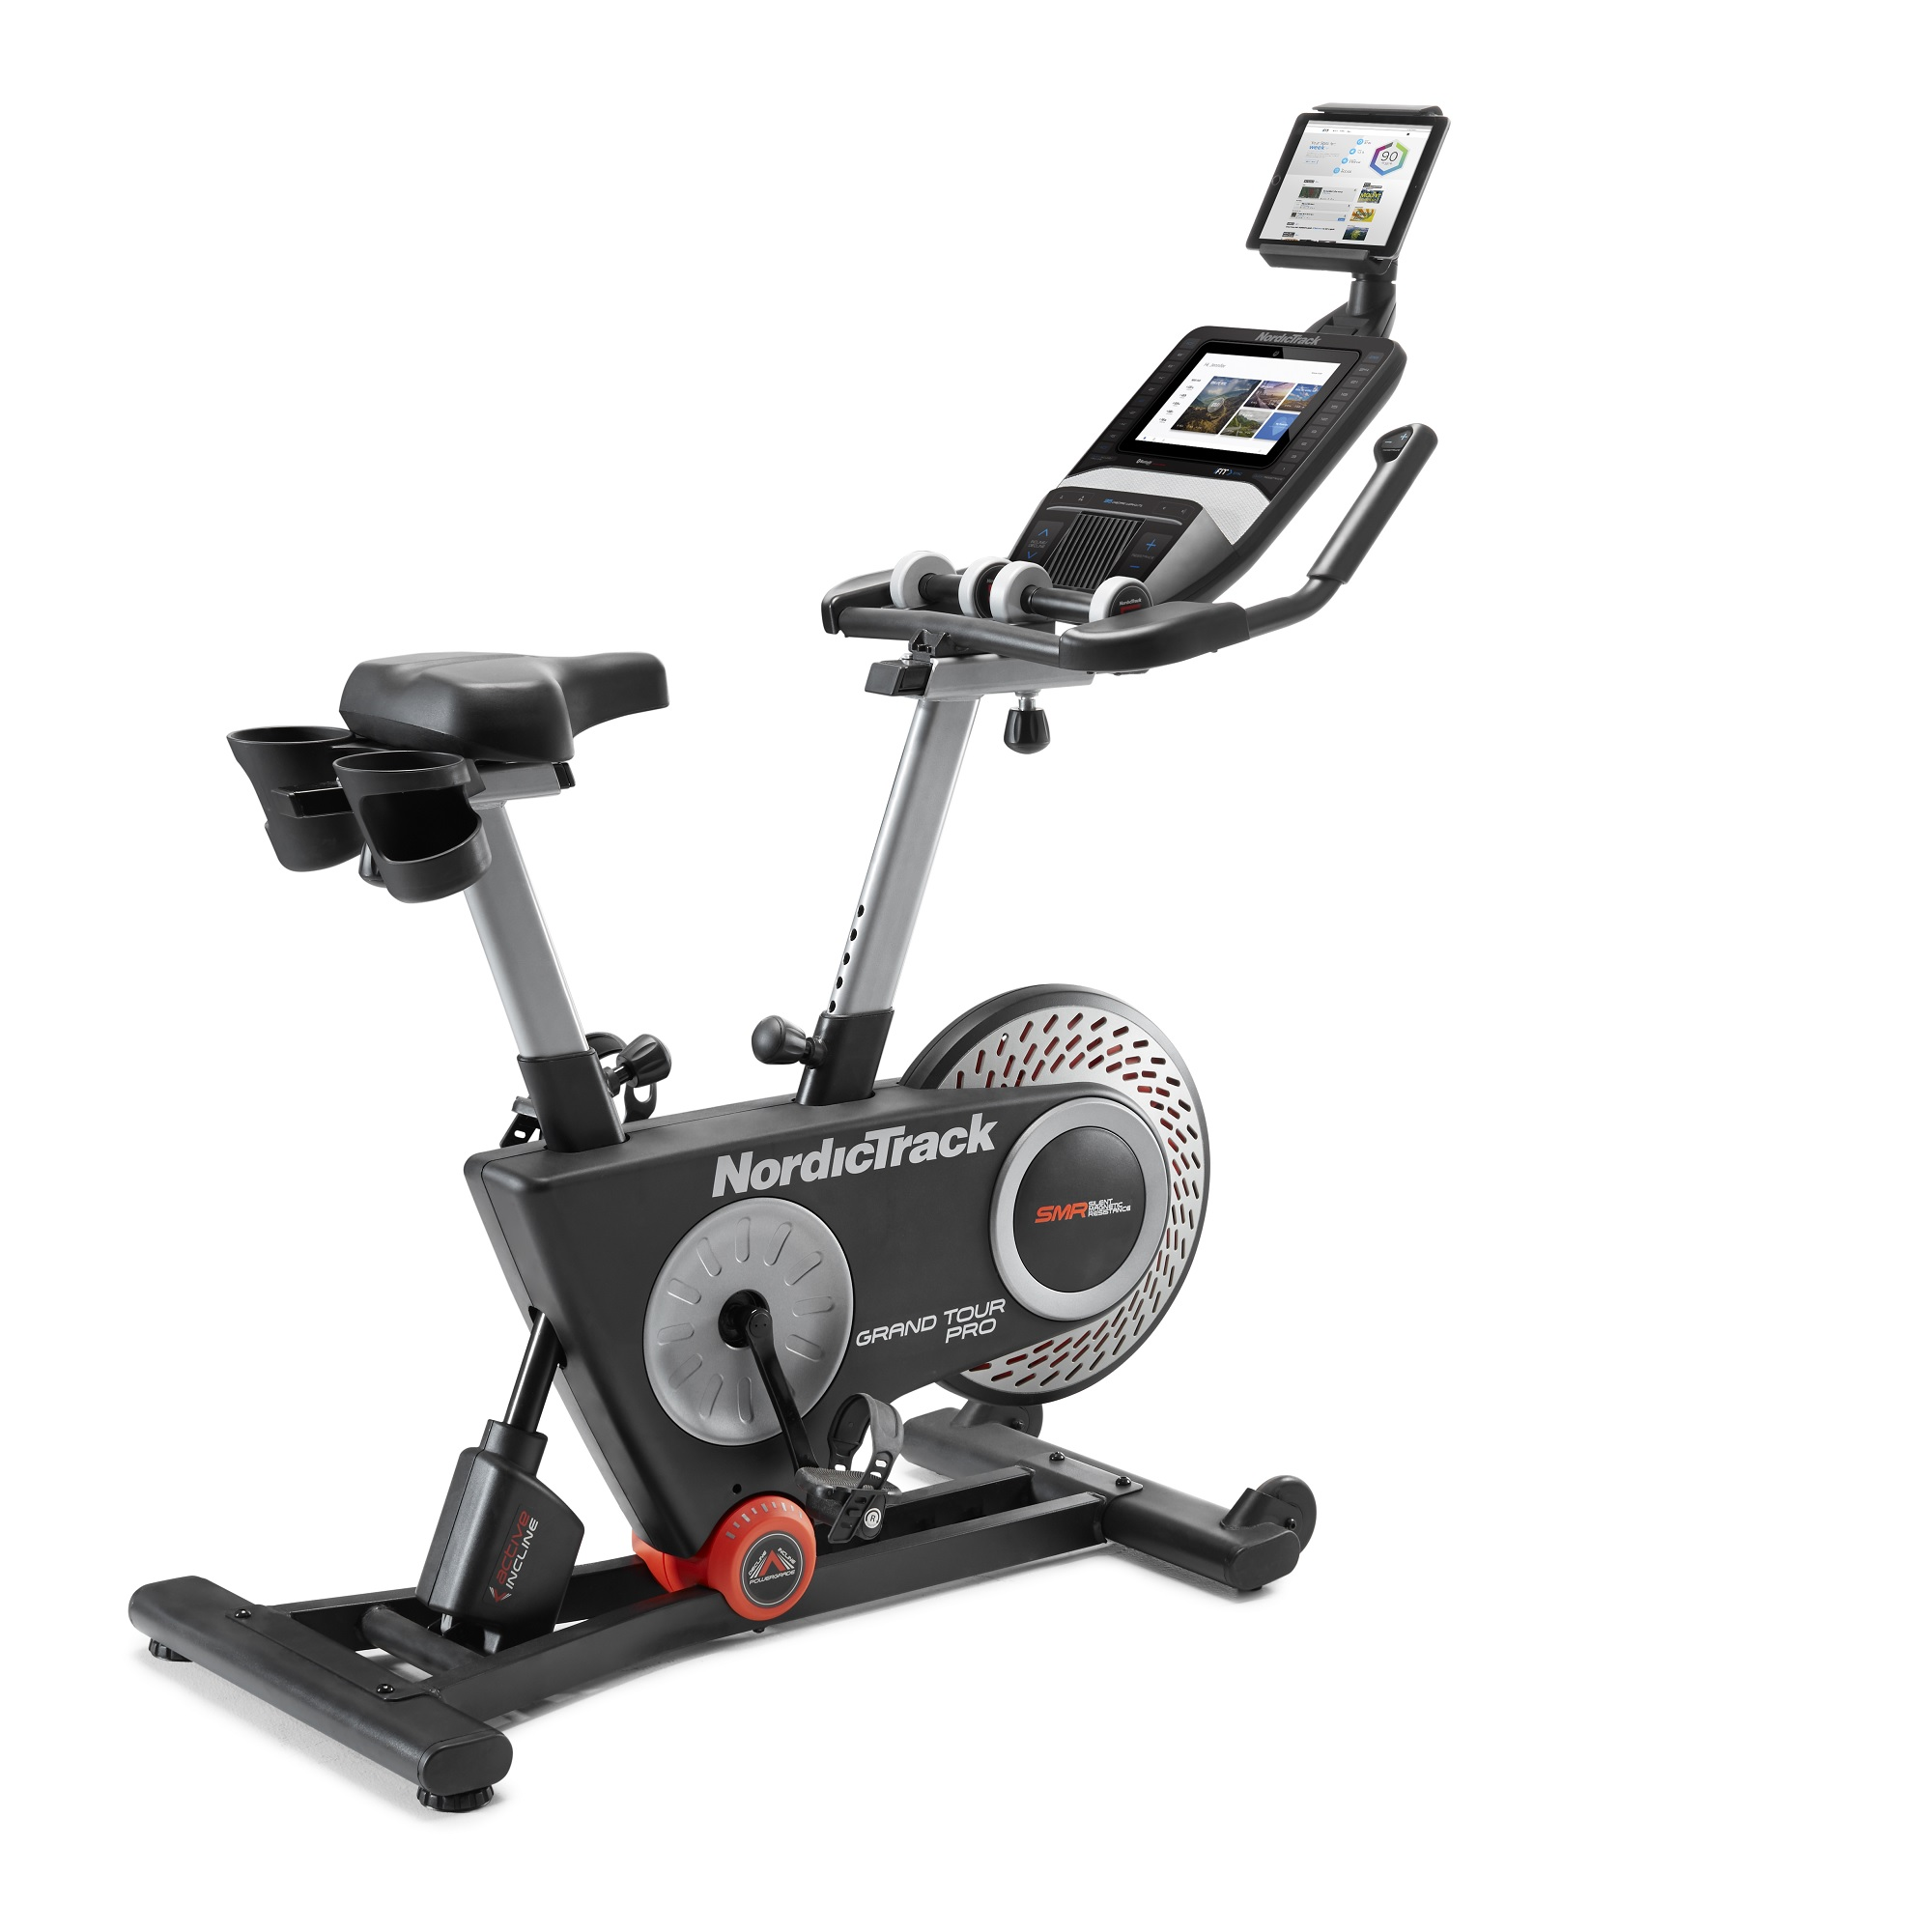 NordicTrack Grand Tour Pro Indoor Cycle